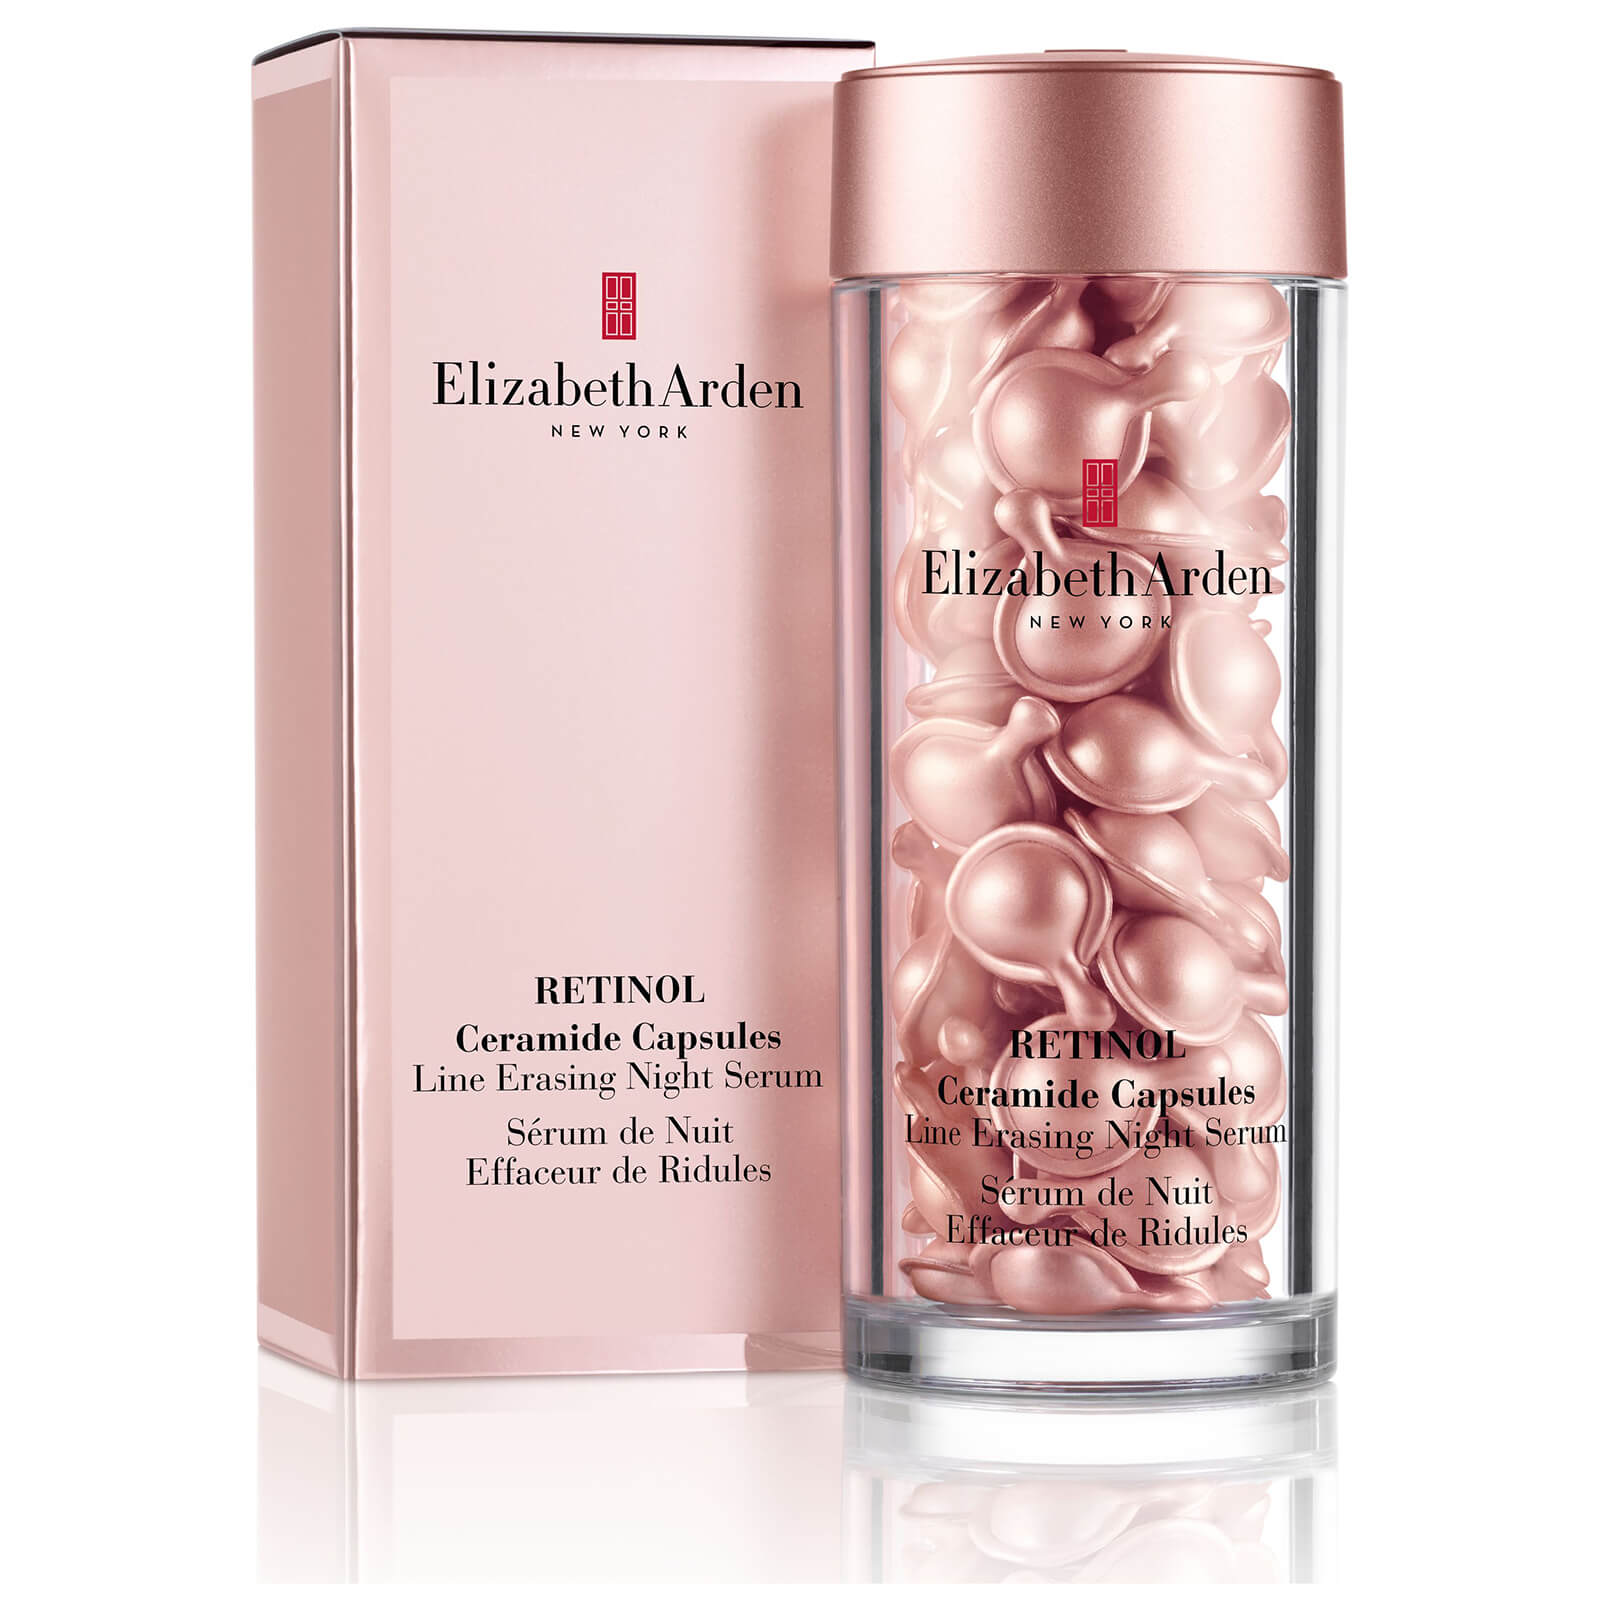 Elizabeth Arden Retinol Ceramide Capsules Line Erasing Night Serum 60 Pieces Sleeved Version Worth 96 Free Us Shipping Lookfantastic